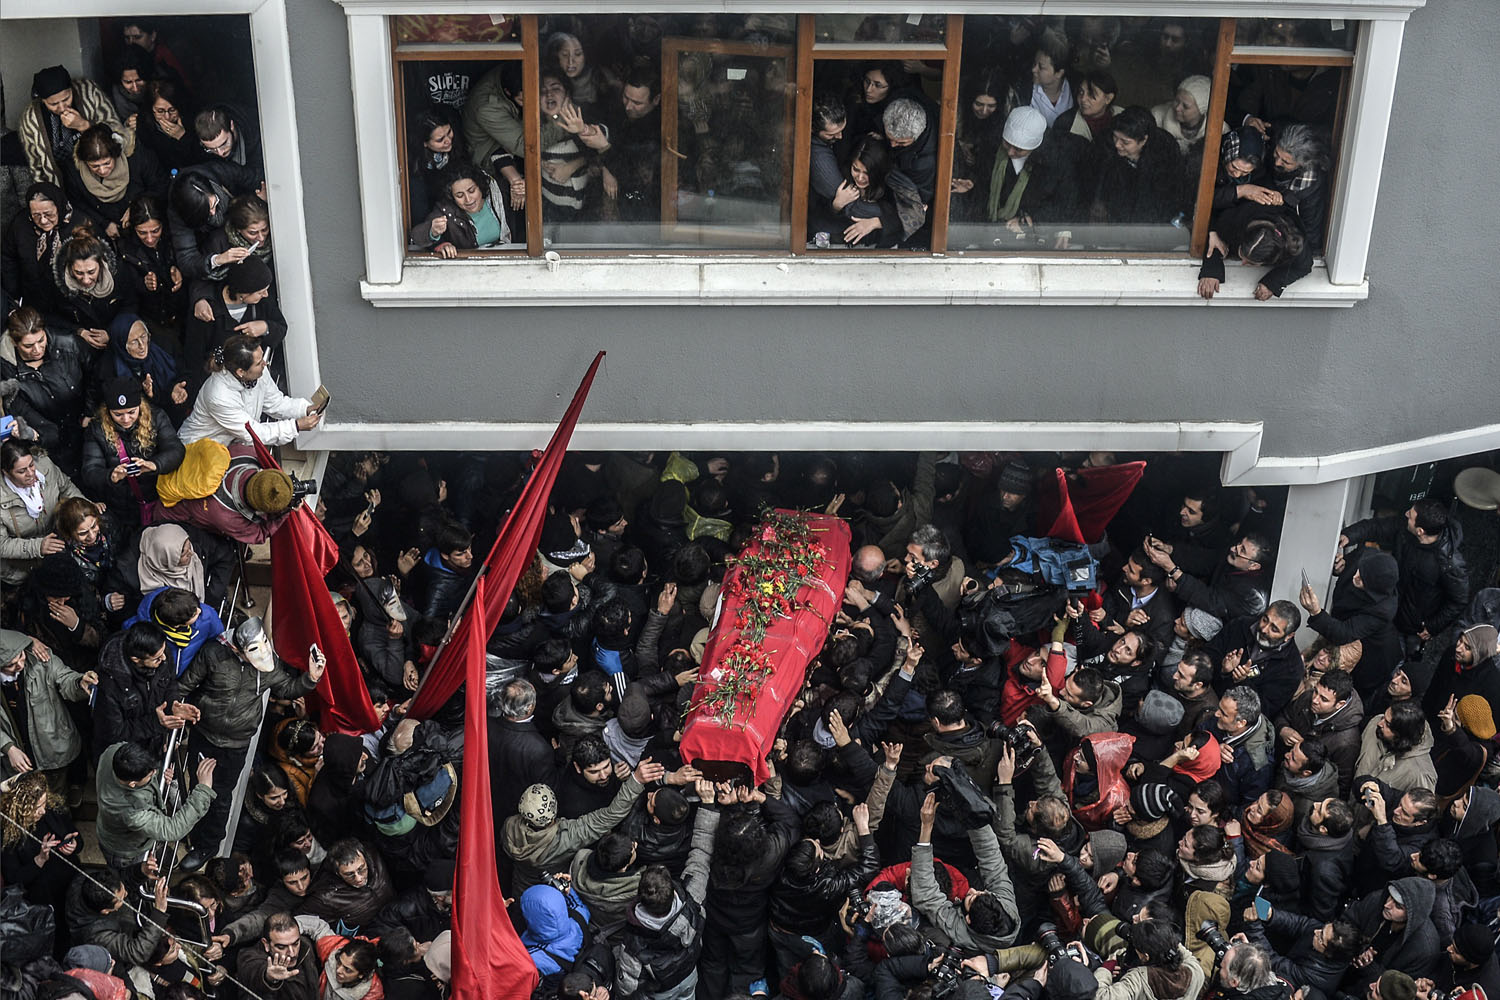 The coffin of Berkin Elvan is carried in Istanbul,  March 11, 2014. Berkin Elvan, who had been in a coma since June 2013 after being struck in the head by a gas canister during a police crackdown on protesters, died March 11.